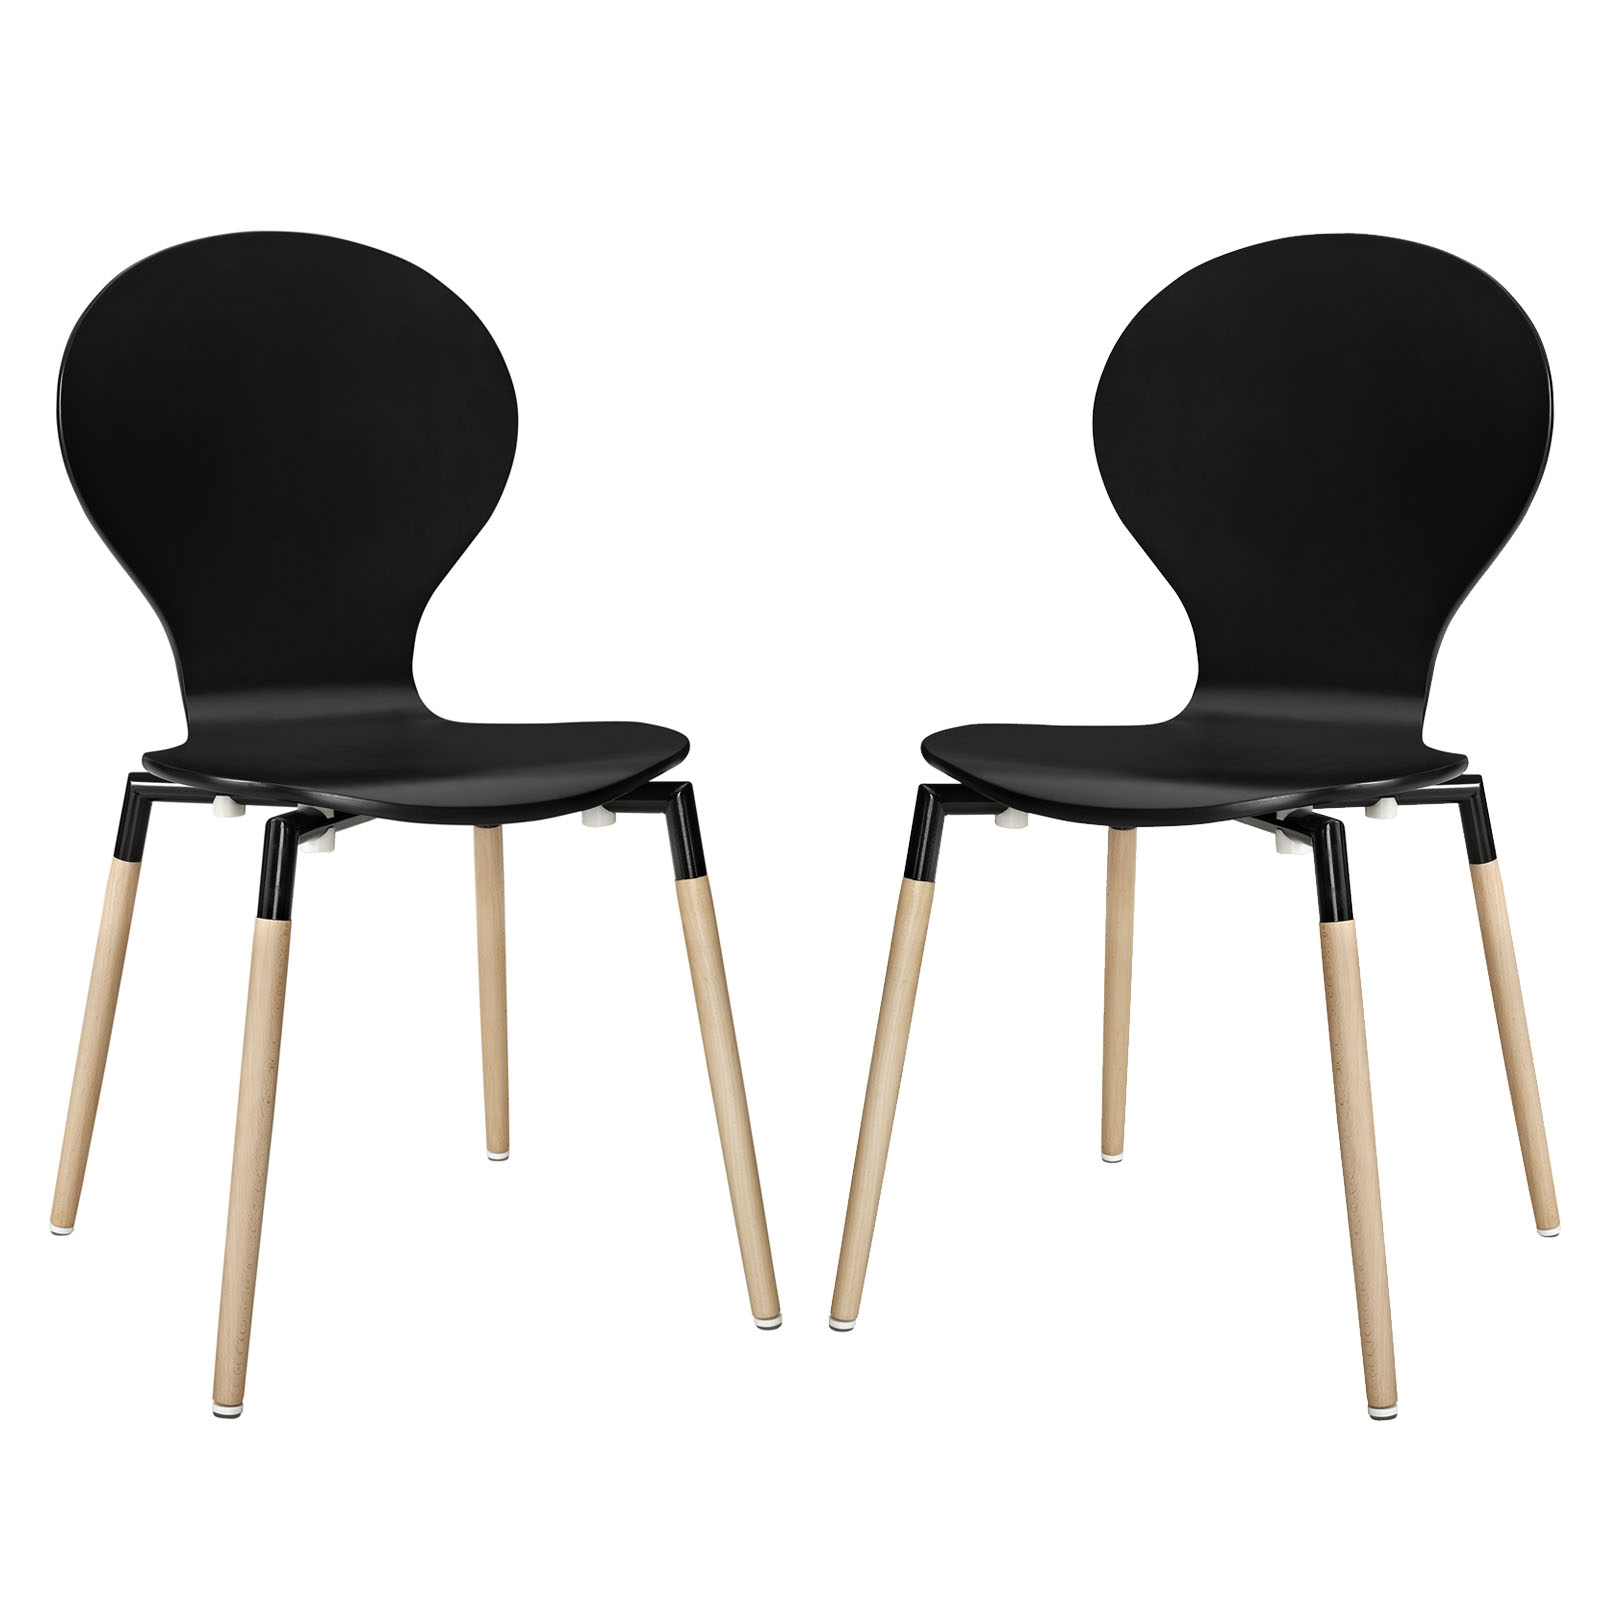 Modern Contemporary Kitchen Wood Dining Chair Set of Two Black